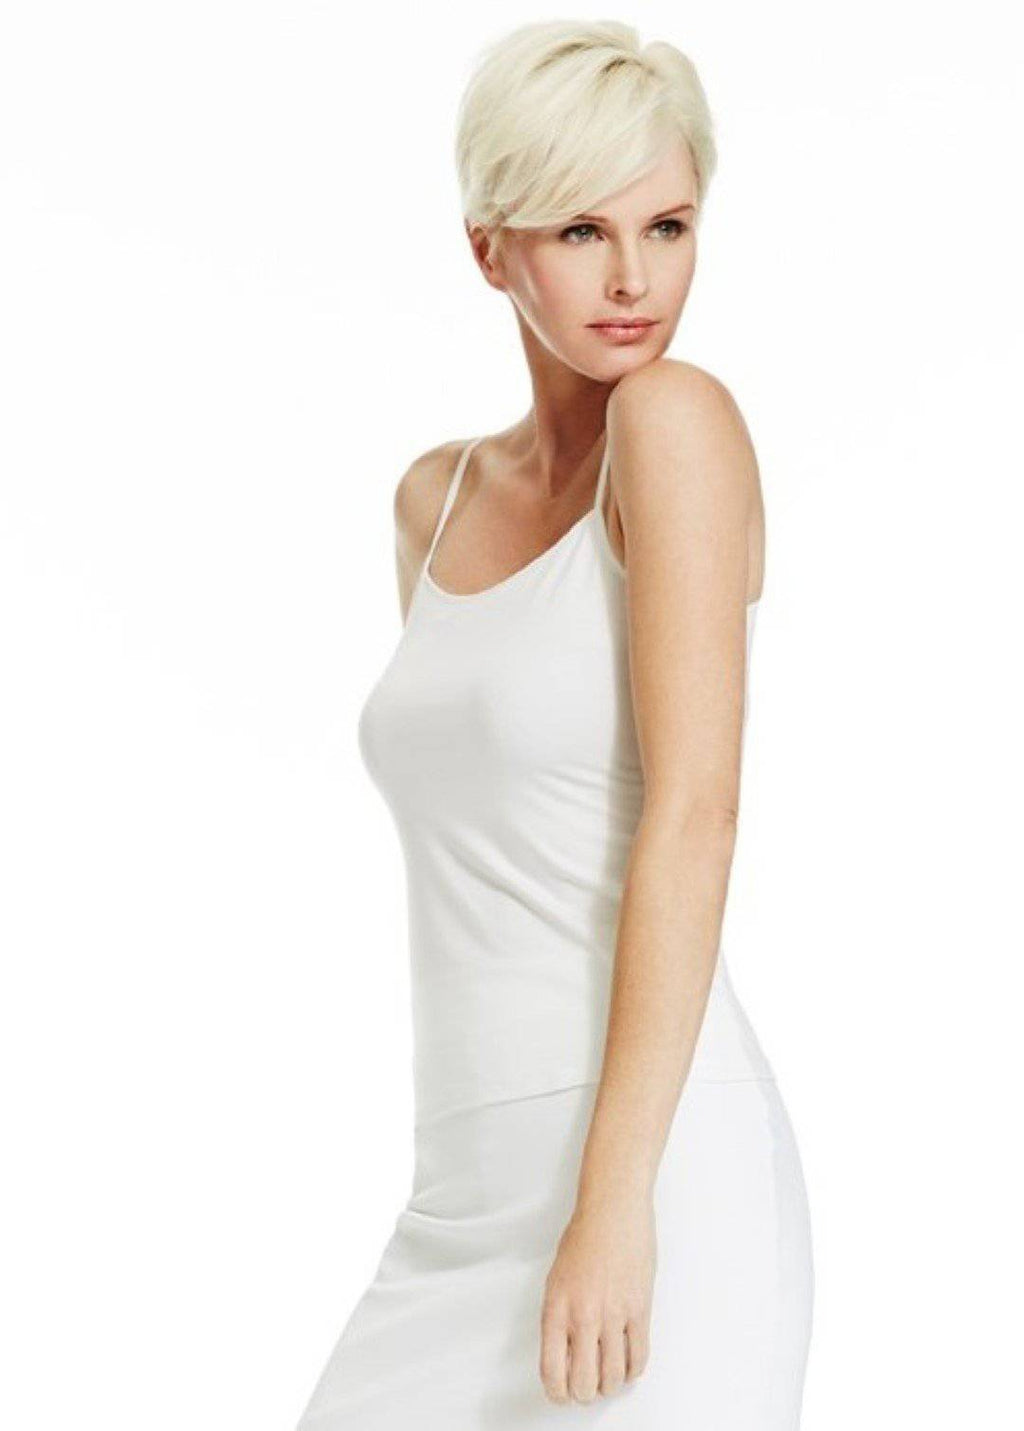 PAULA RYAN ESSENTIALS Slim Fit Cami - MicroModal - Top - Paula Ryan Essentials - Paula Ryan